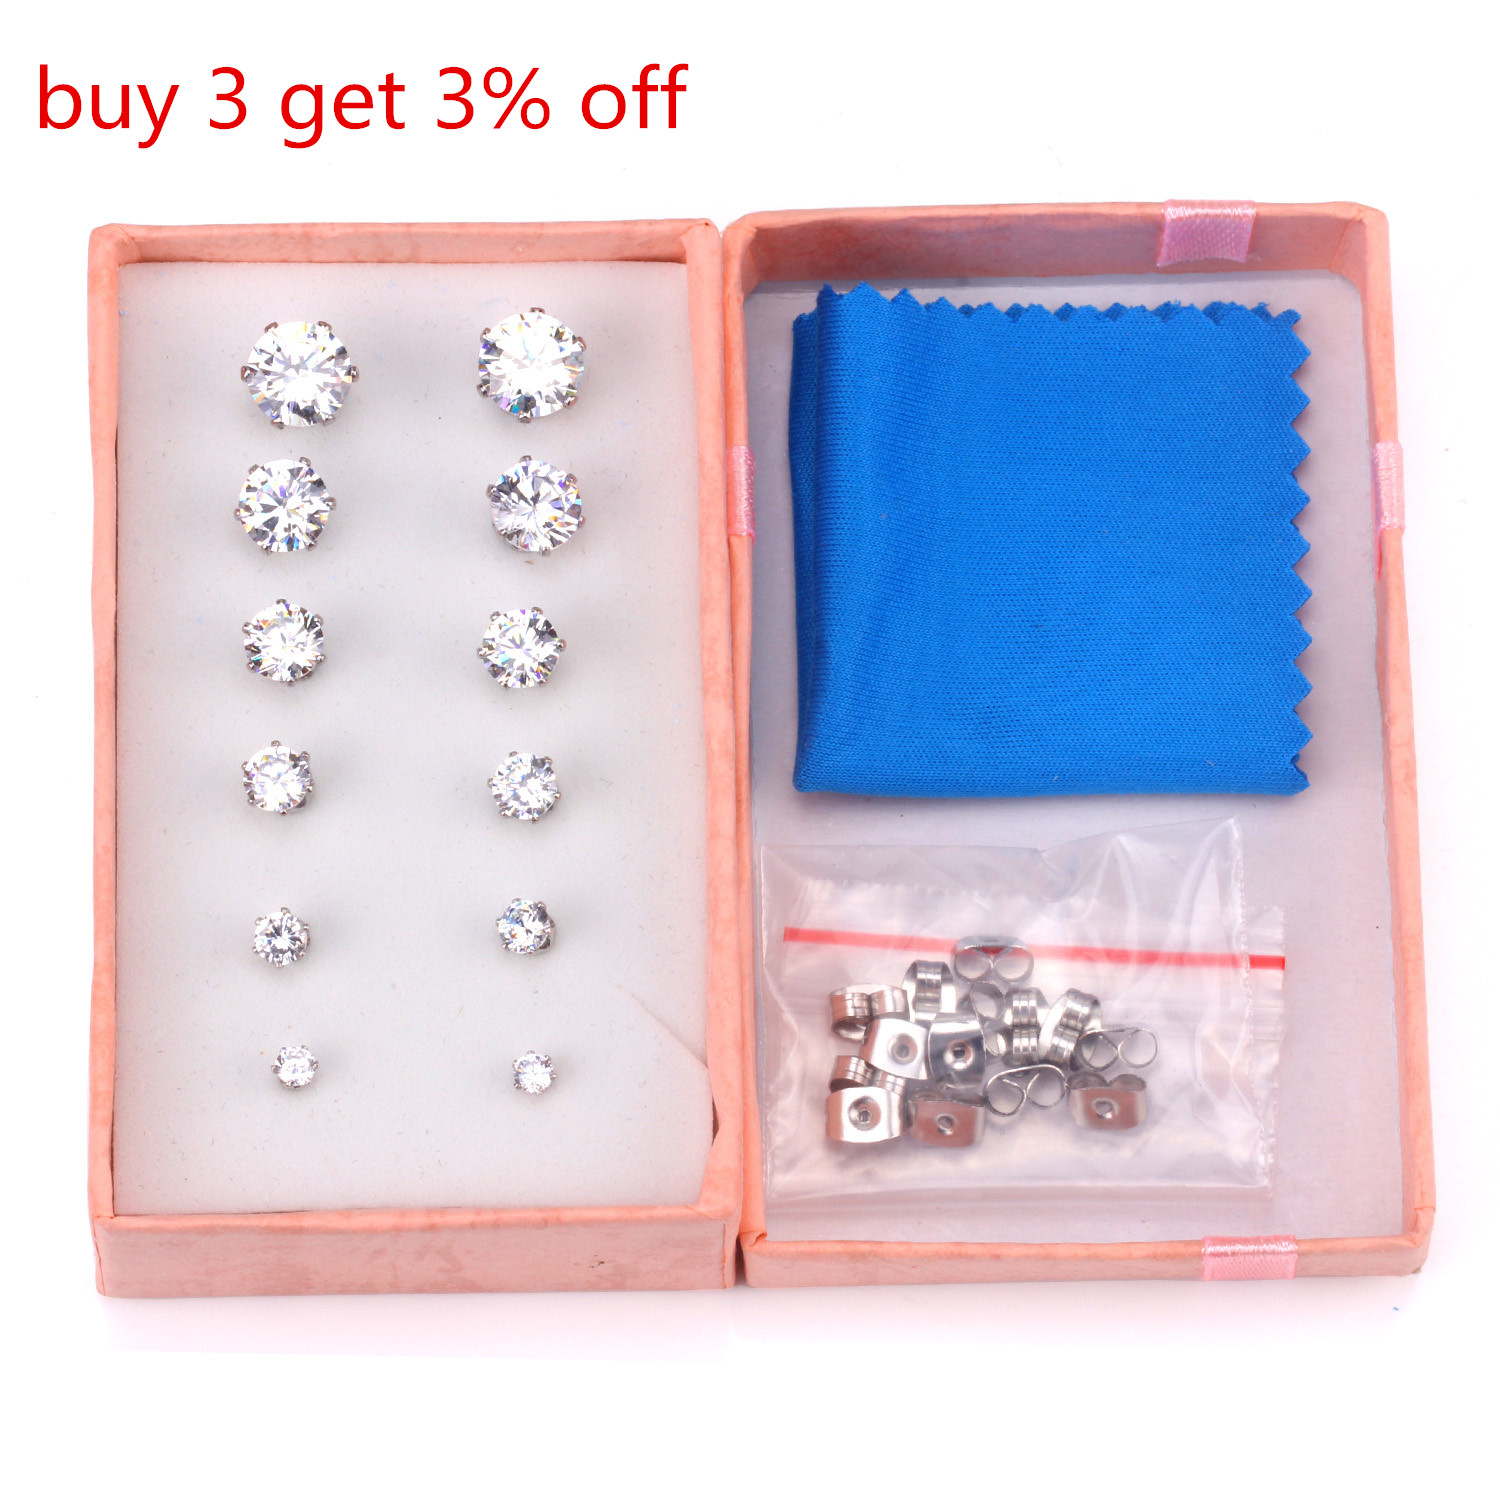 LUXUSTEEL Round/Square Cubic Zirconia 6pair/box Earring Set Colorful BirthStone Push Back Stud Earrings Bijoux pendientes